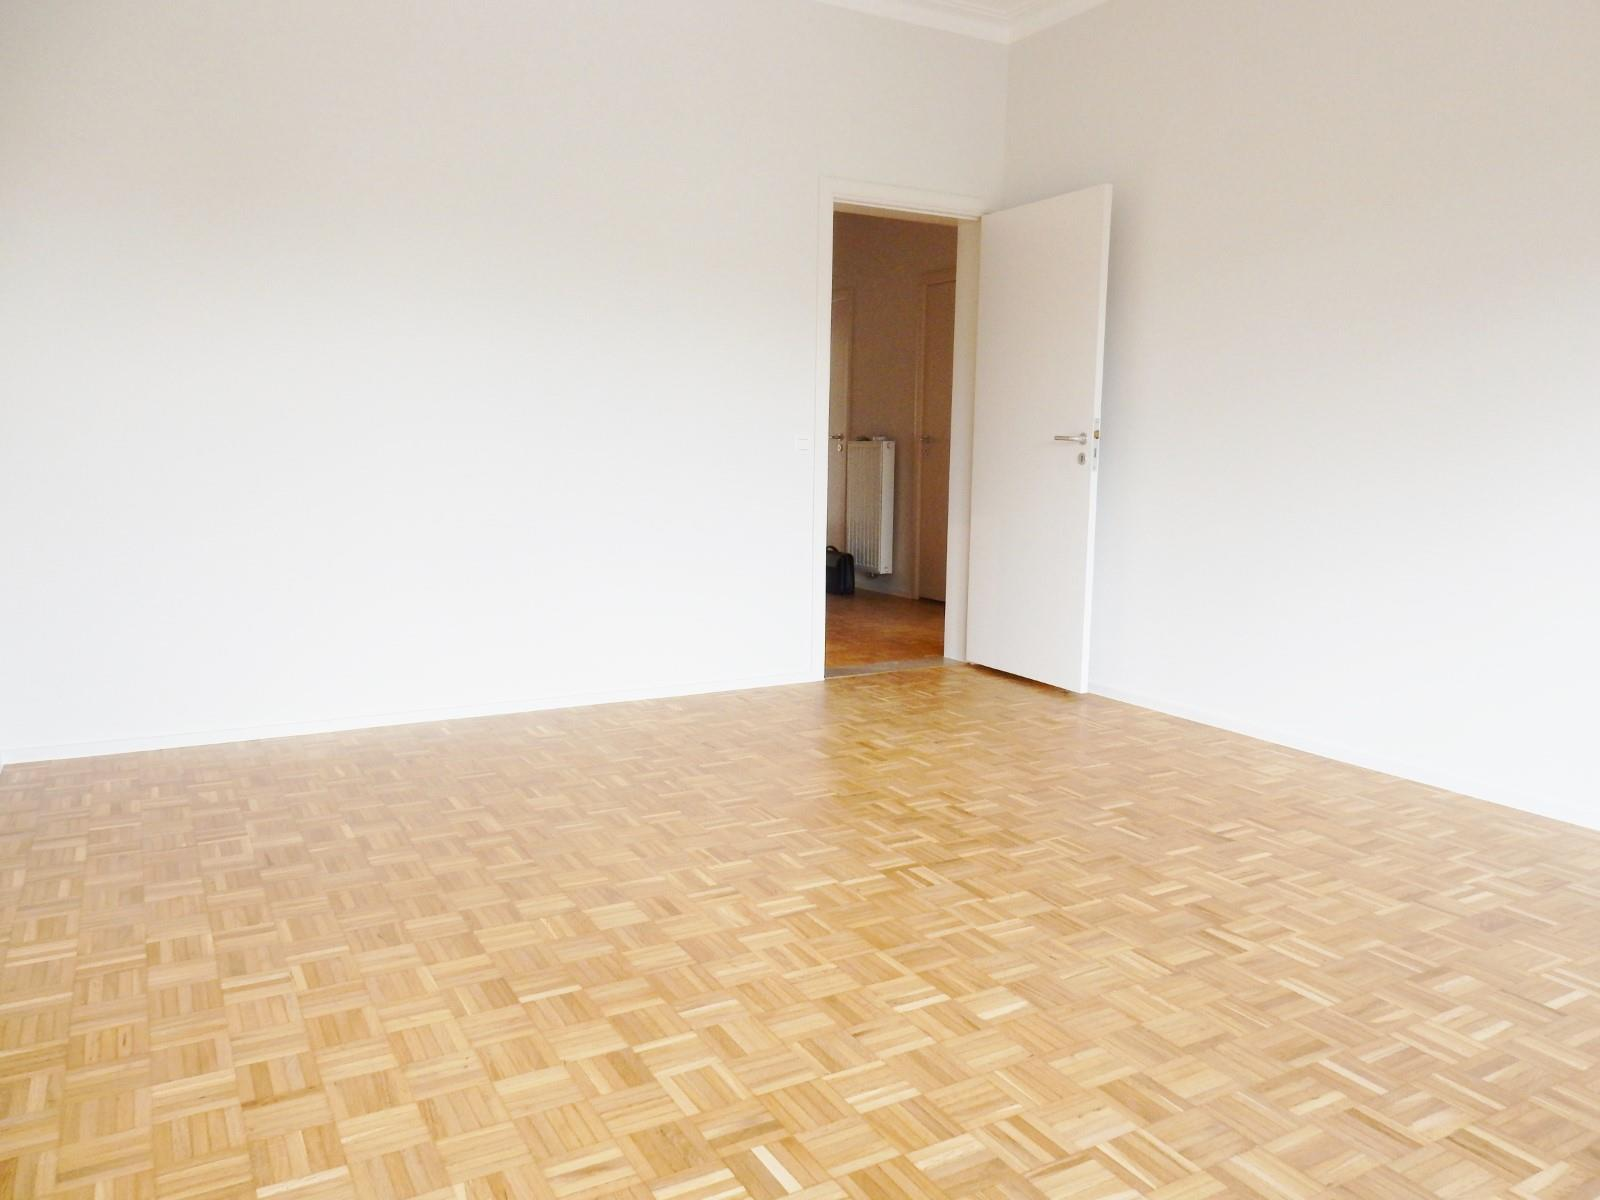 Appartement exceptionnel - Uccle - #3601428-6